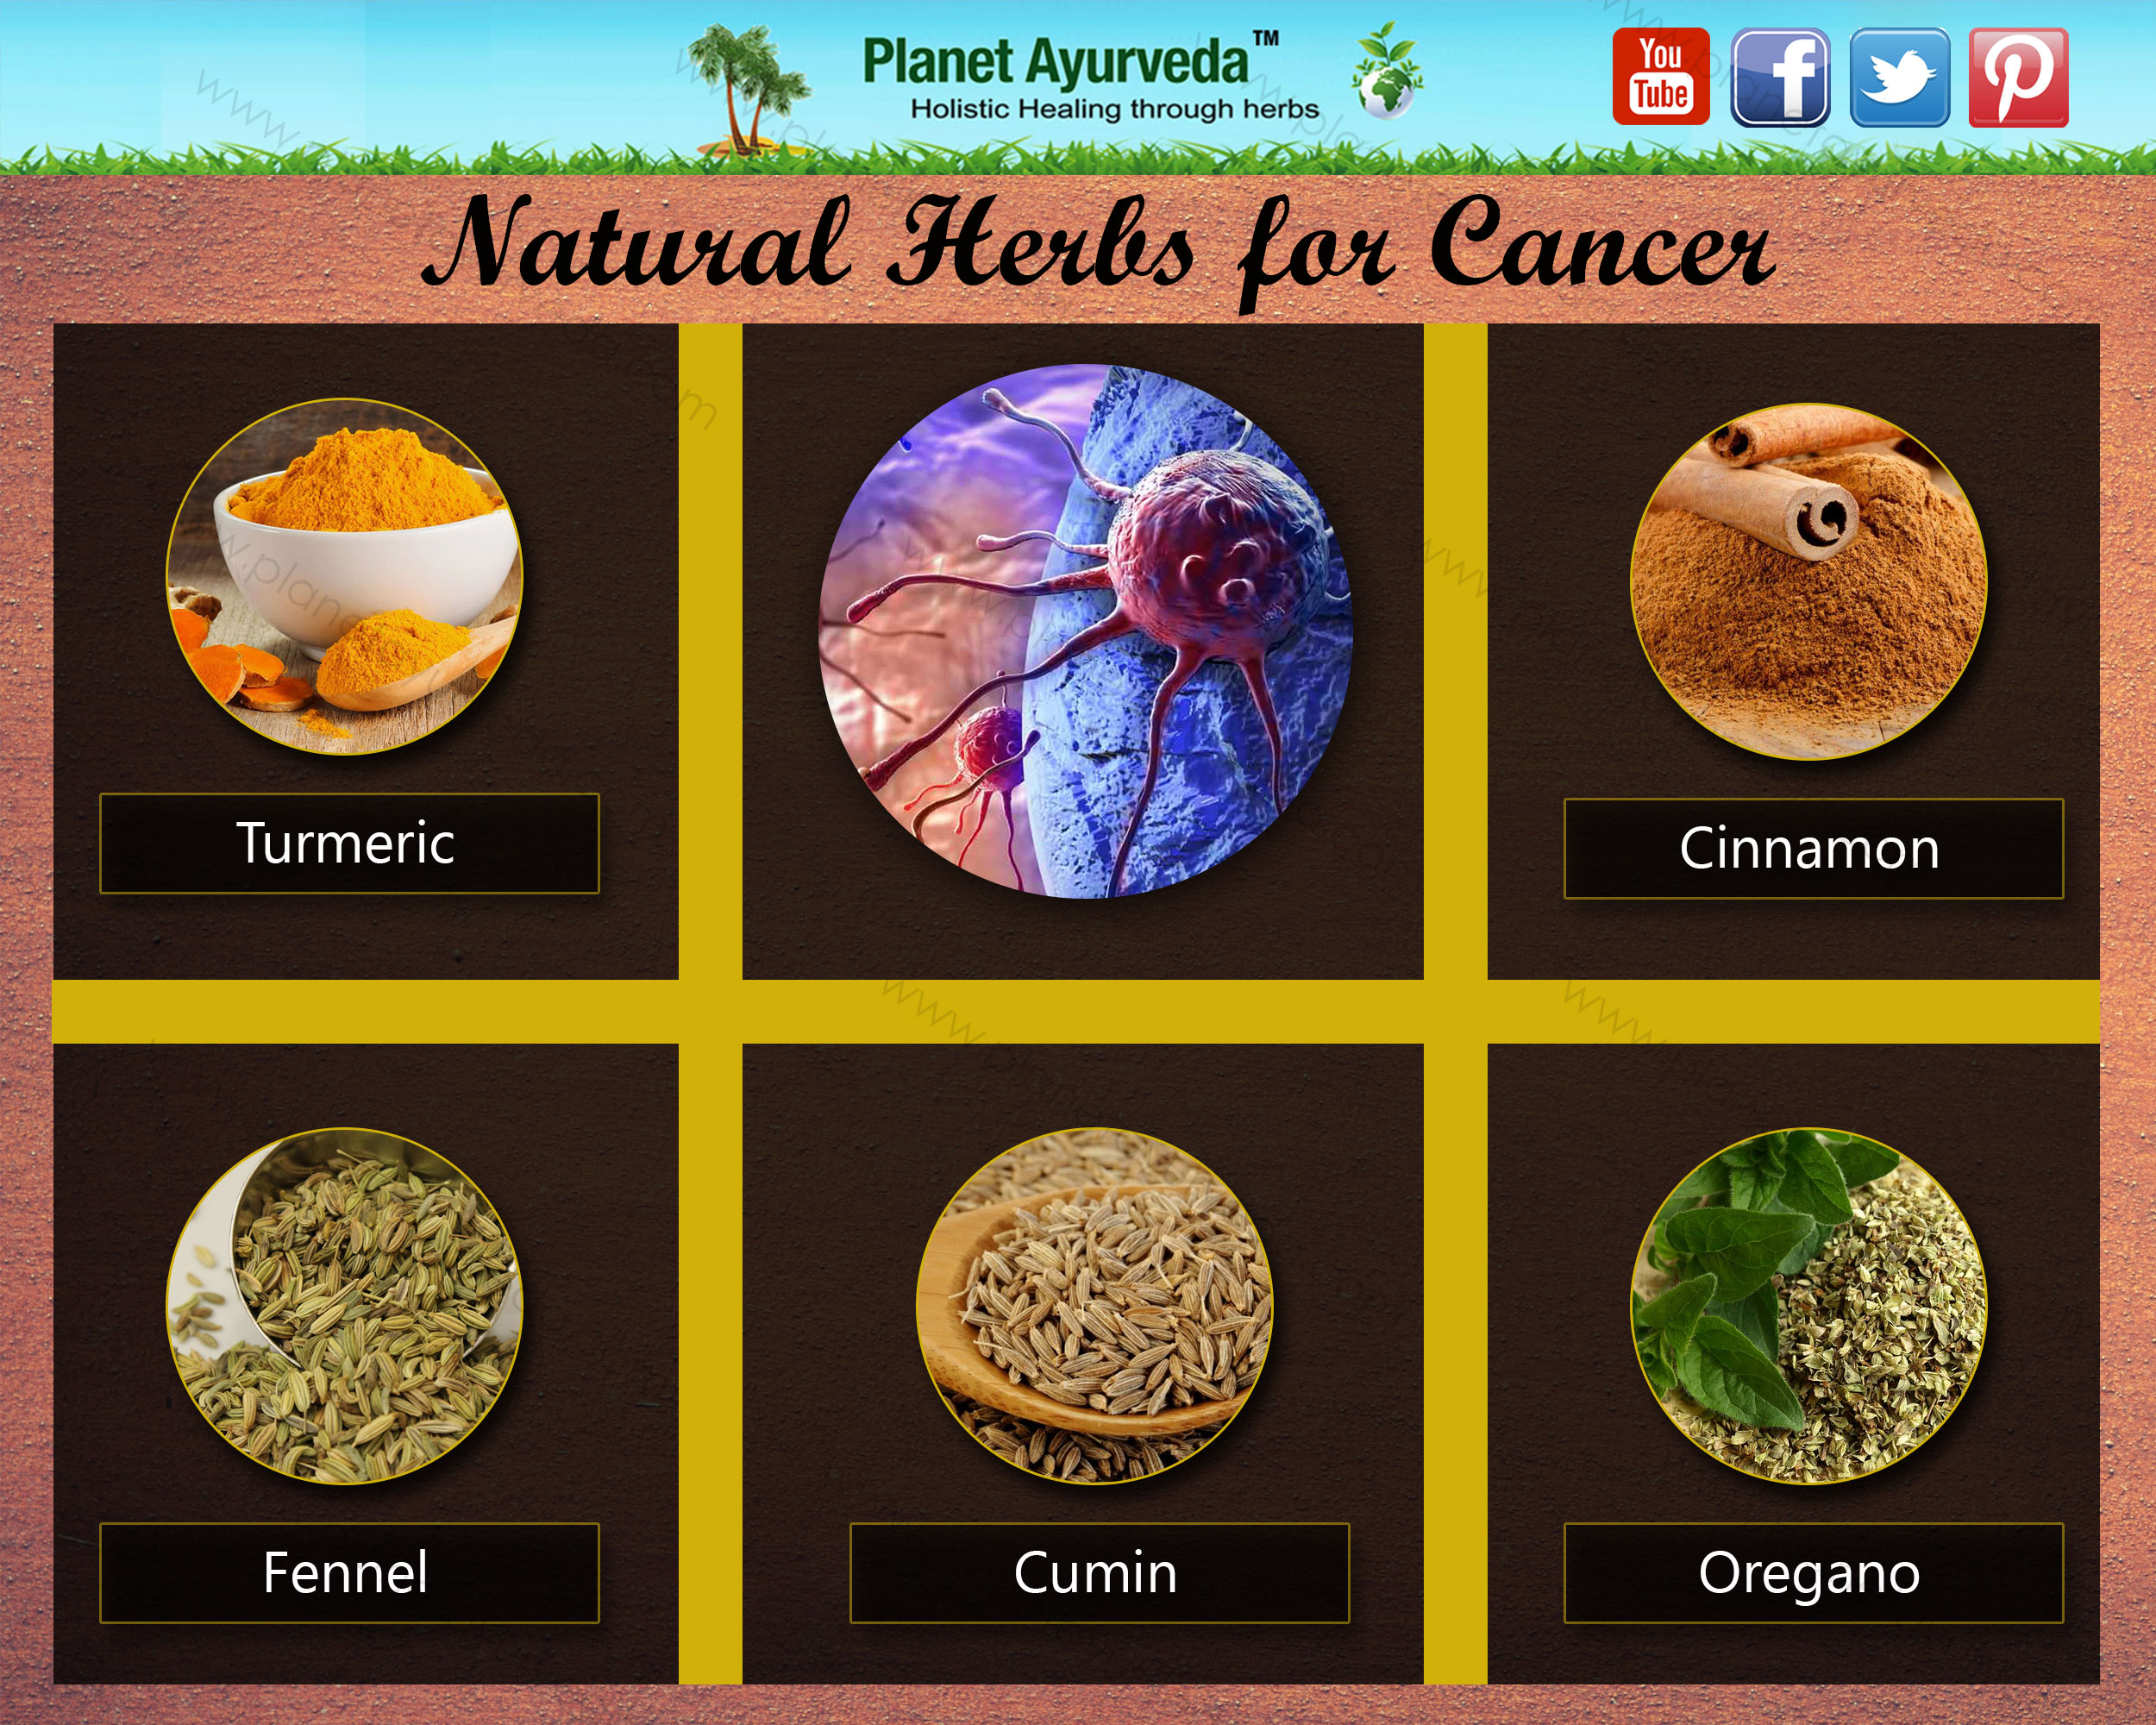 Natural Herbs for Cancer